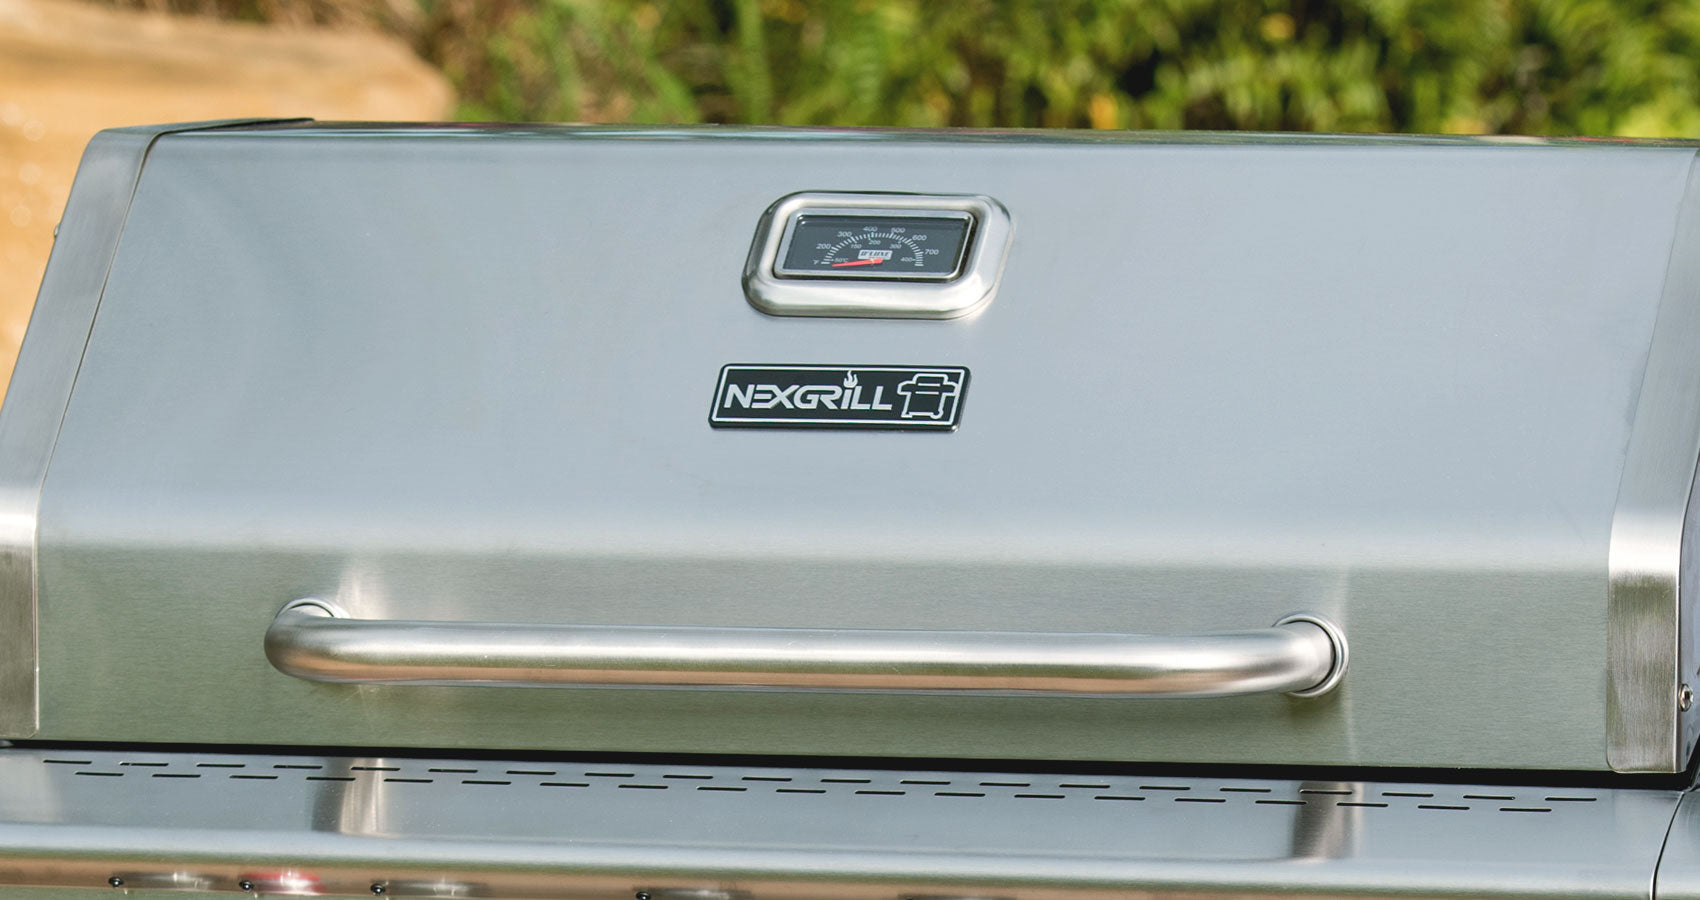 close up of nexgrill stainless steel hood